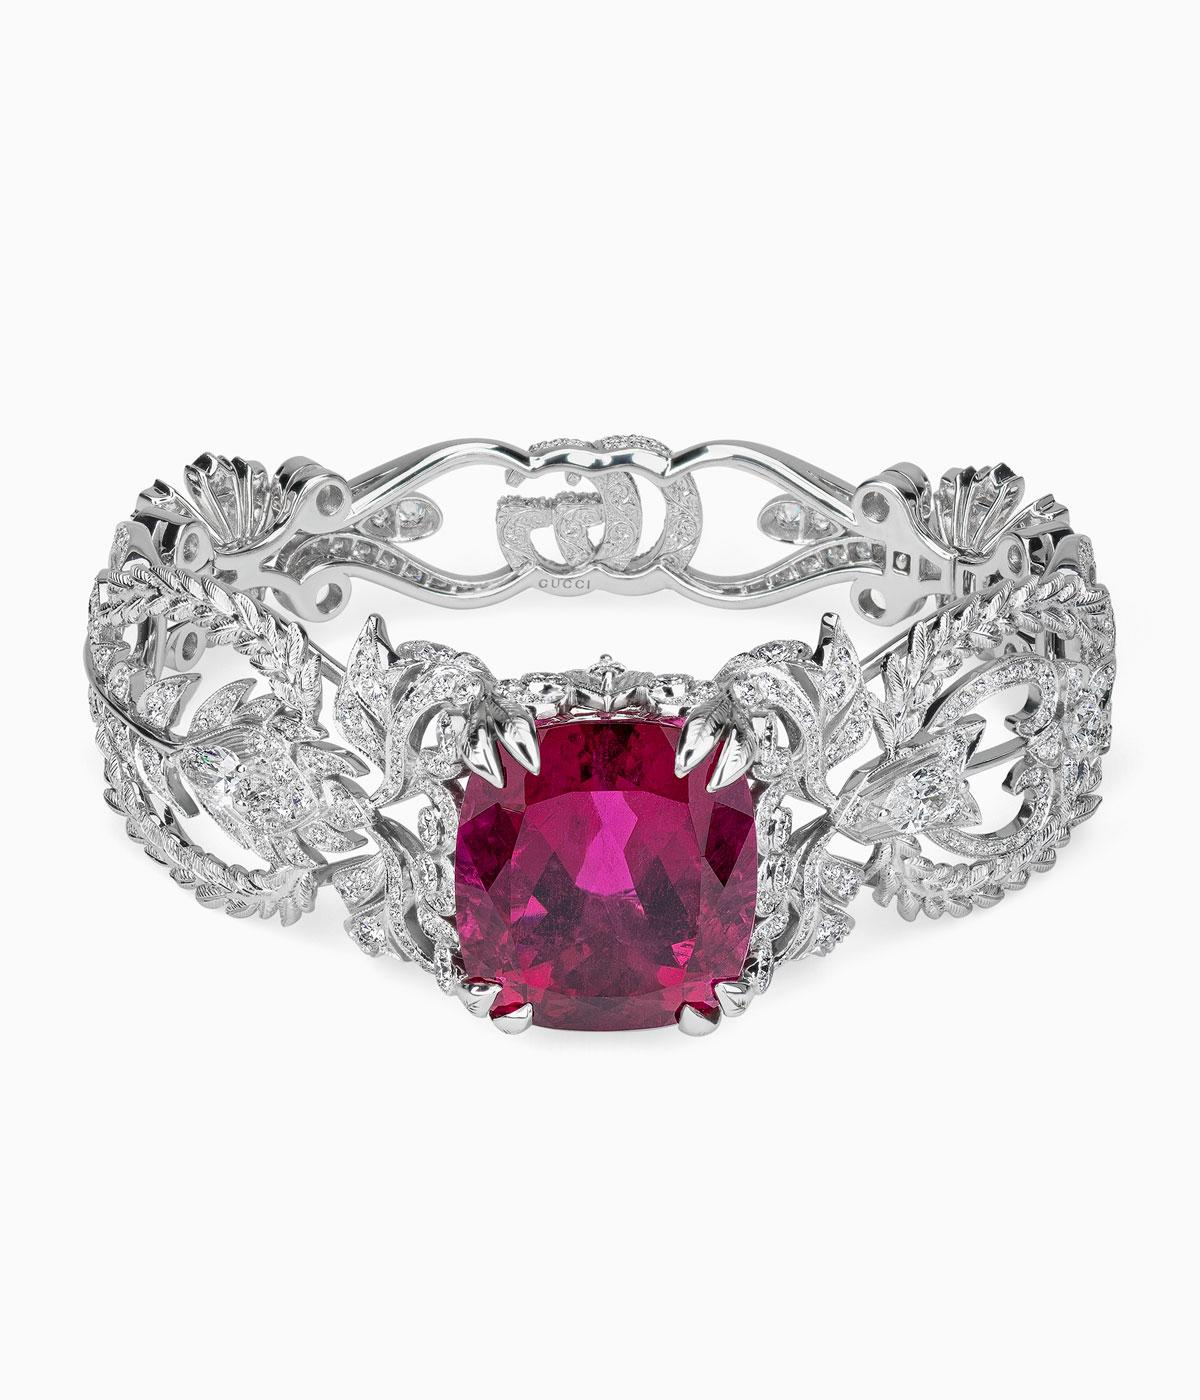 Gucci high jewellery diamond bracelet with large pink stones in the centre